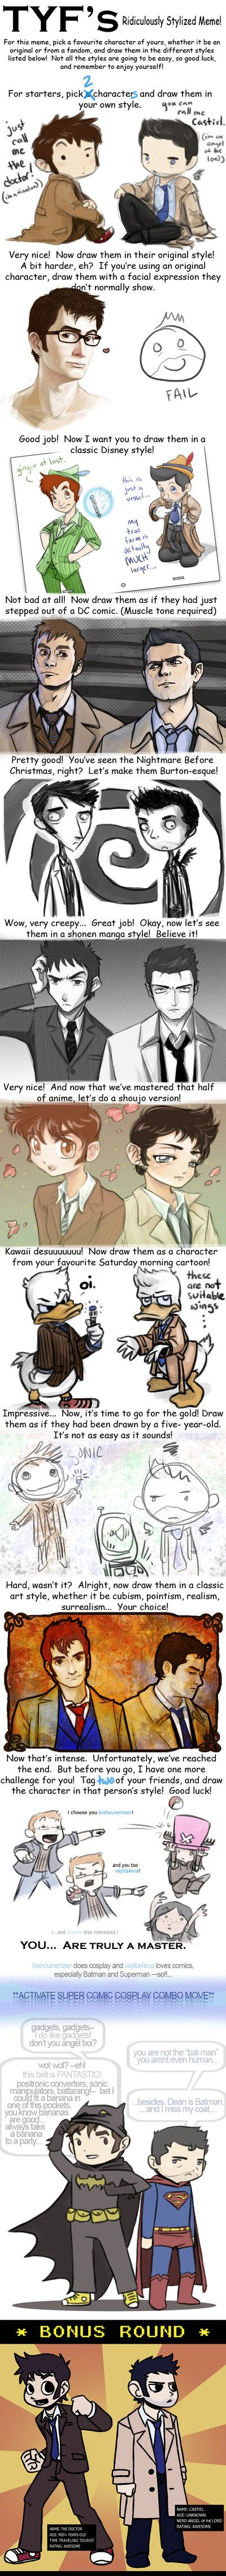 Style Meme - DW and SPN by JoannaJohnen-- do I put this in doctor who or supernatural?